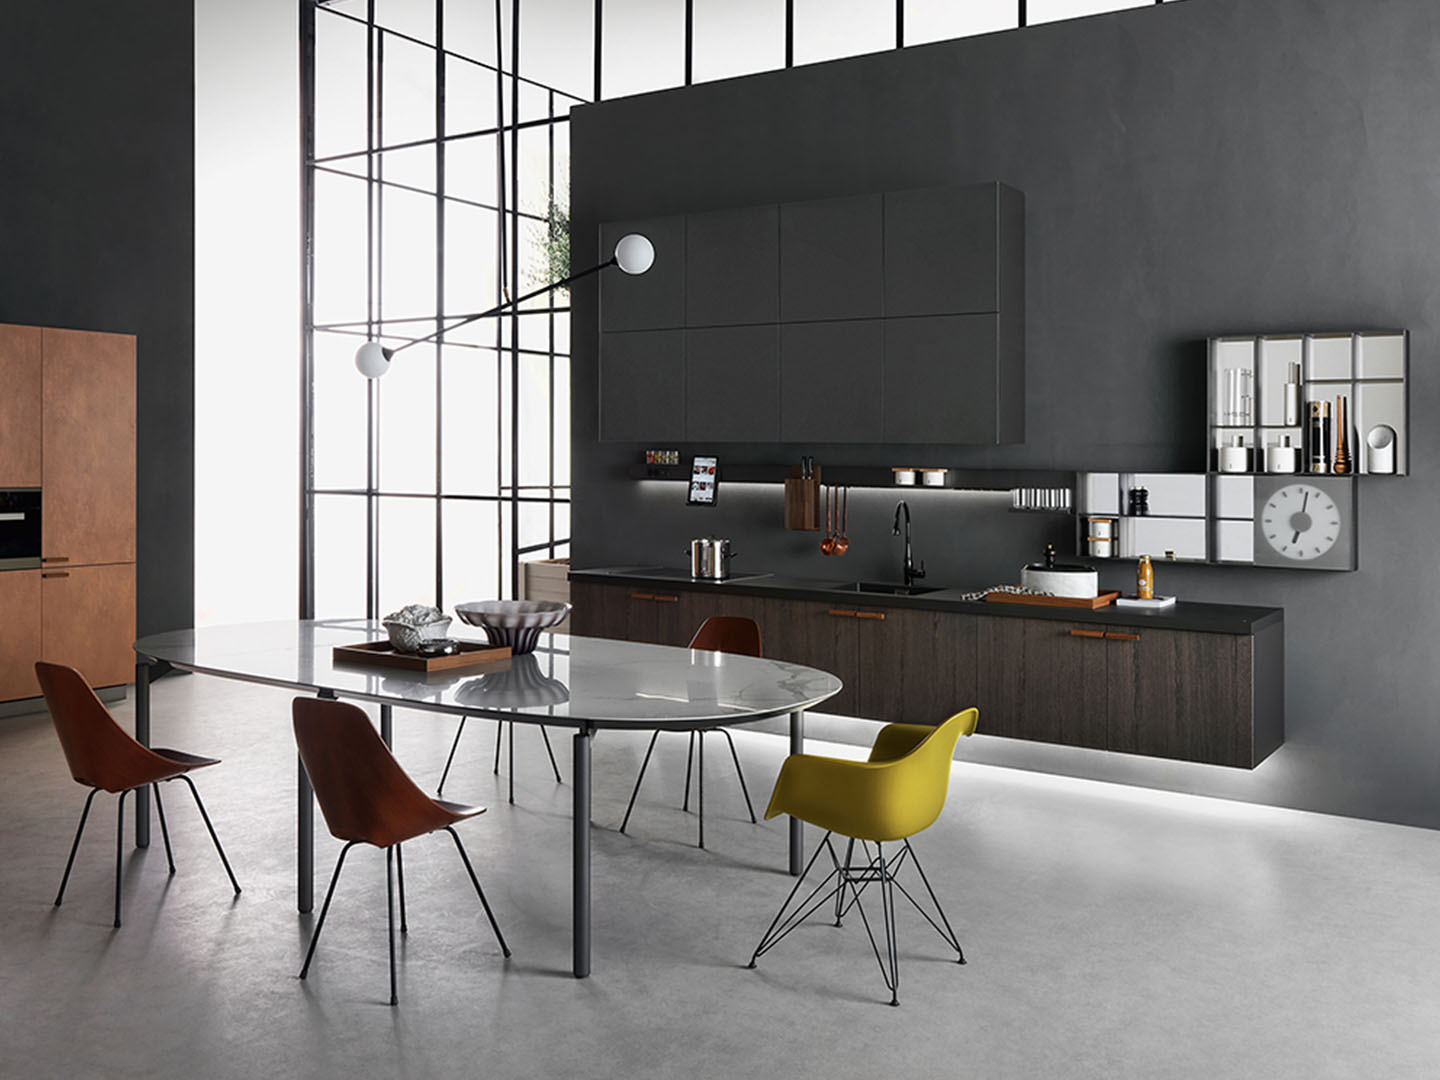 Emejing Cucine Dada Outlet Contemporary - bery.us - bery.us